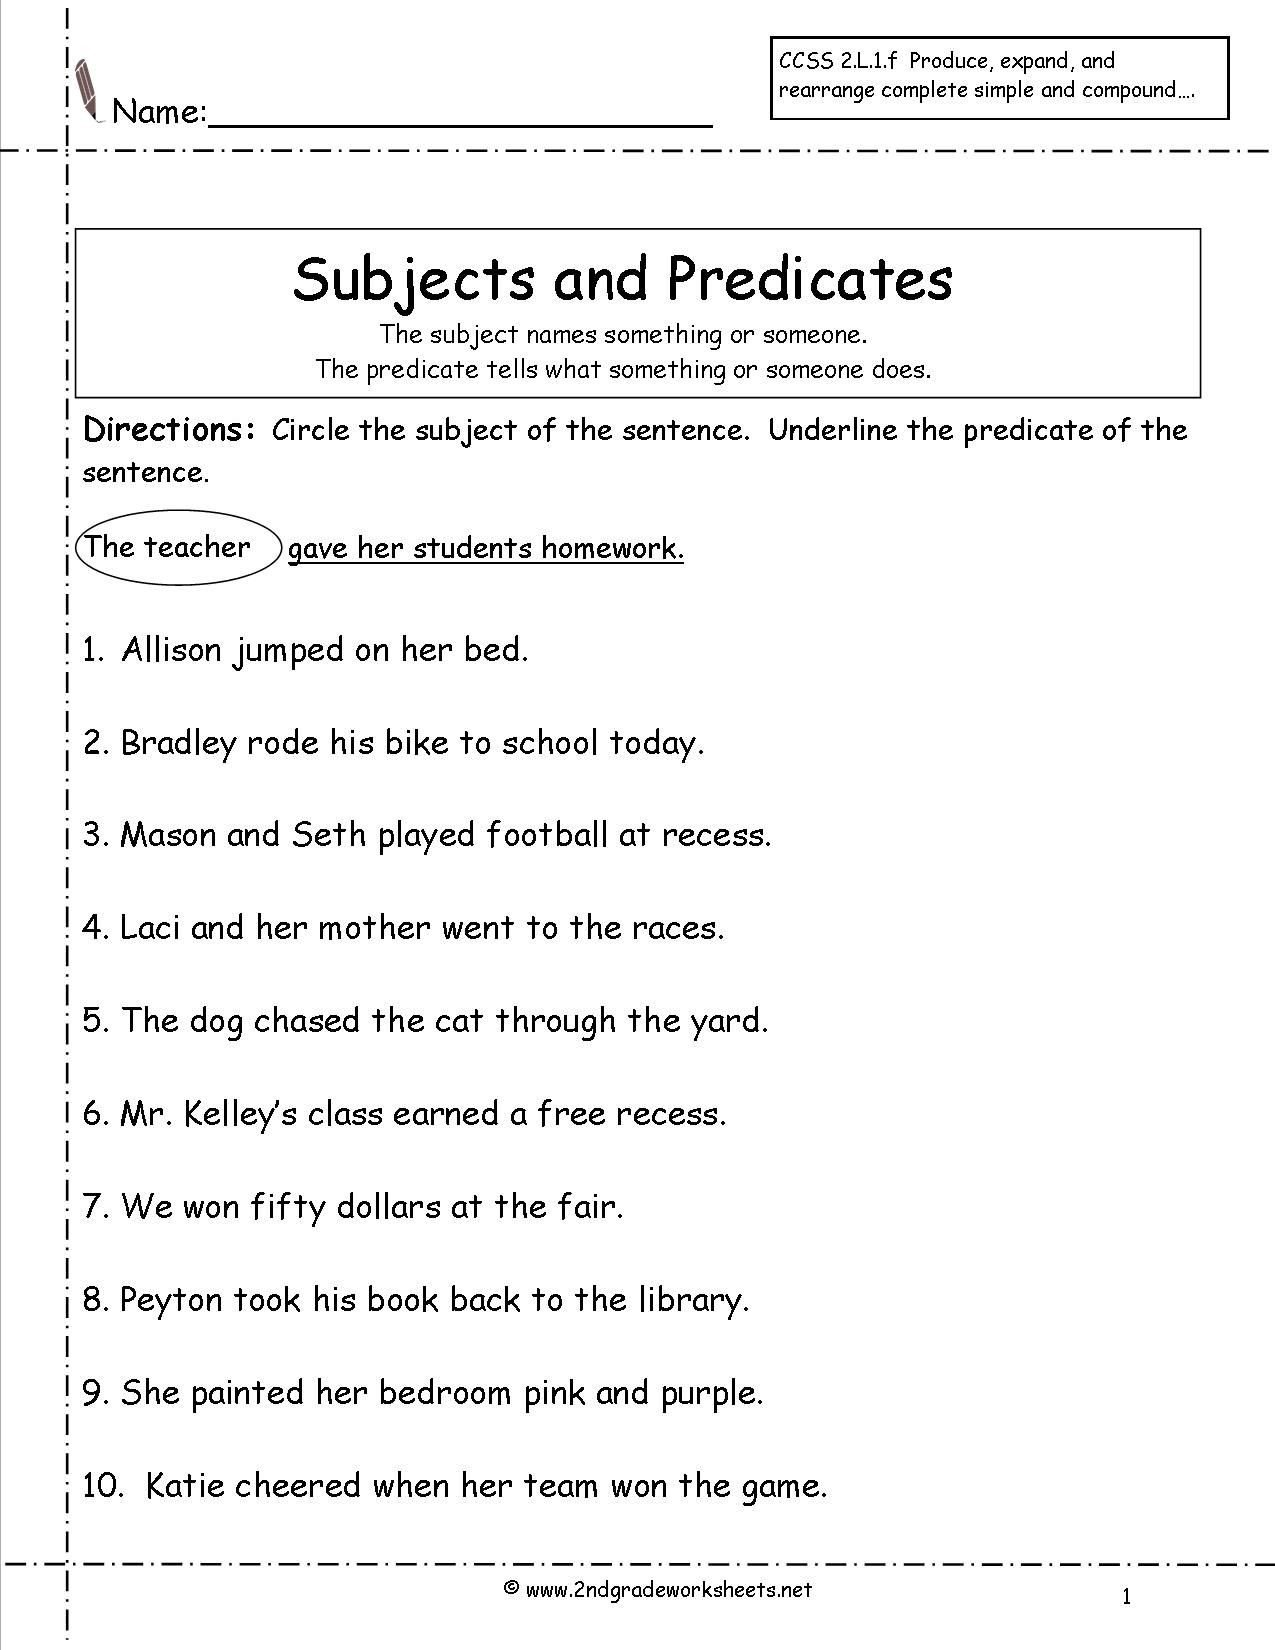 Capitalization Worksheets for 2nd Grade Subject Predicate Worksheets 2nd Grade Google Search